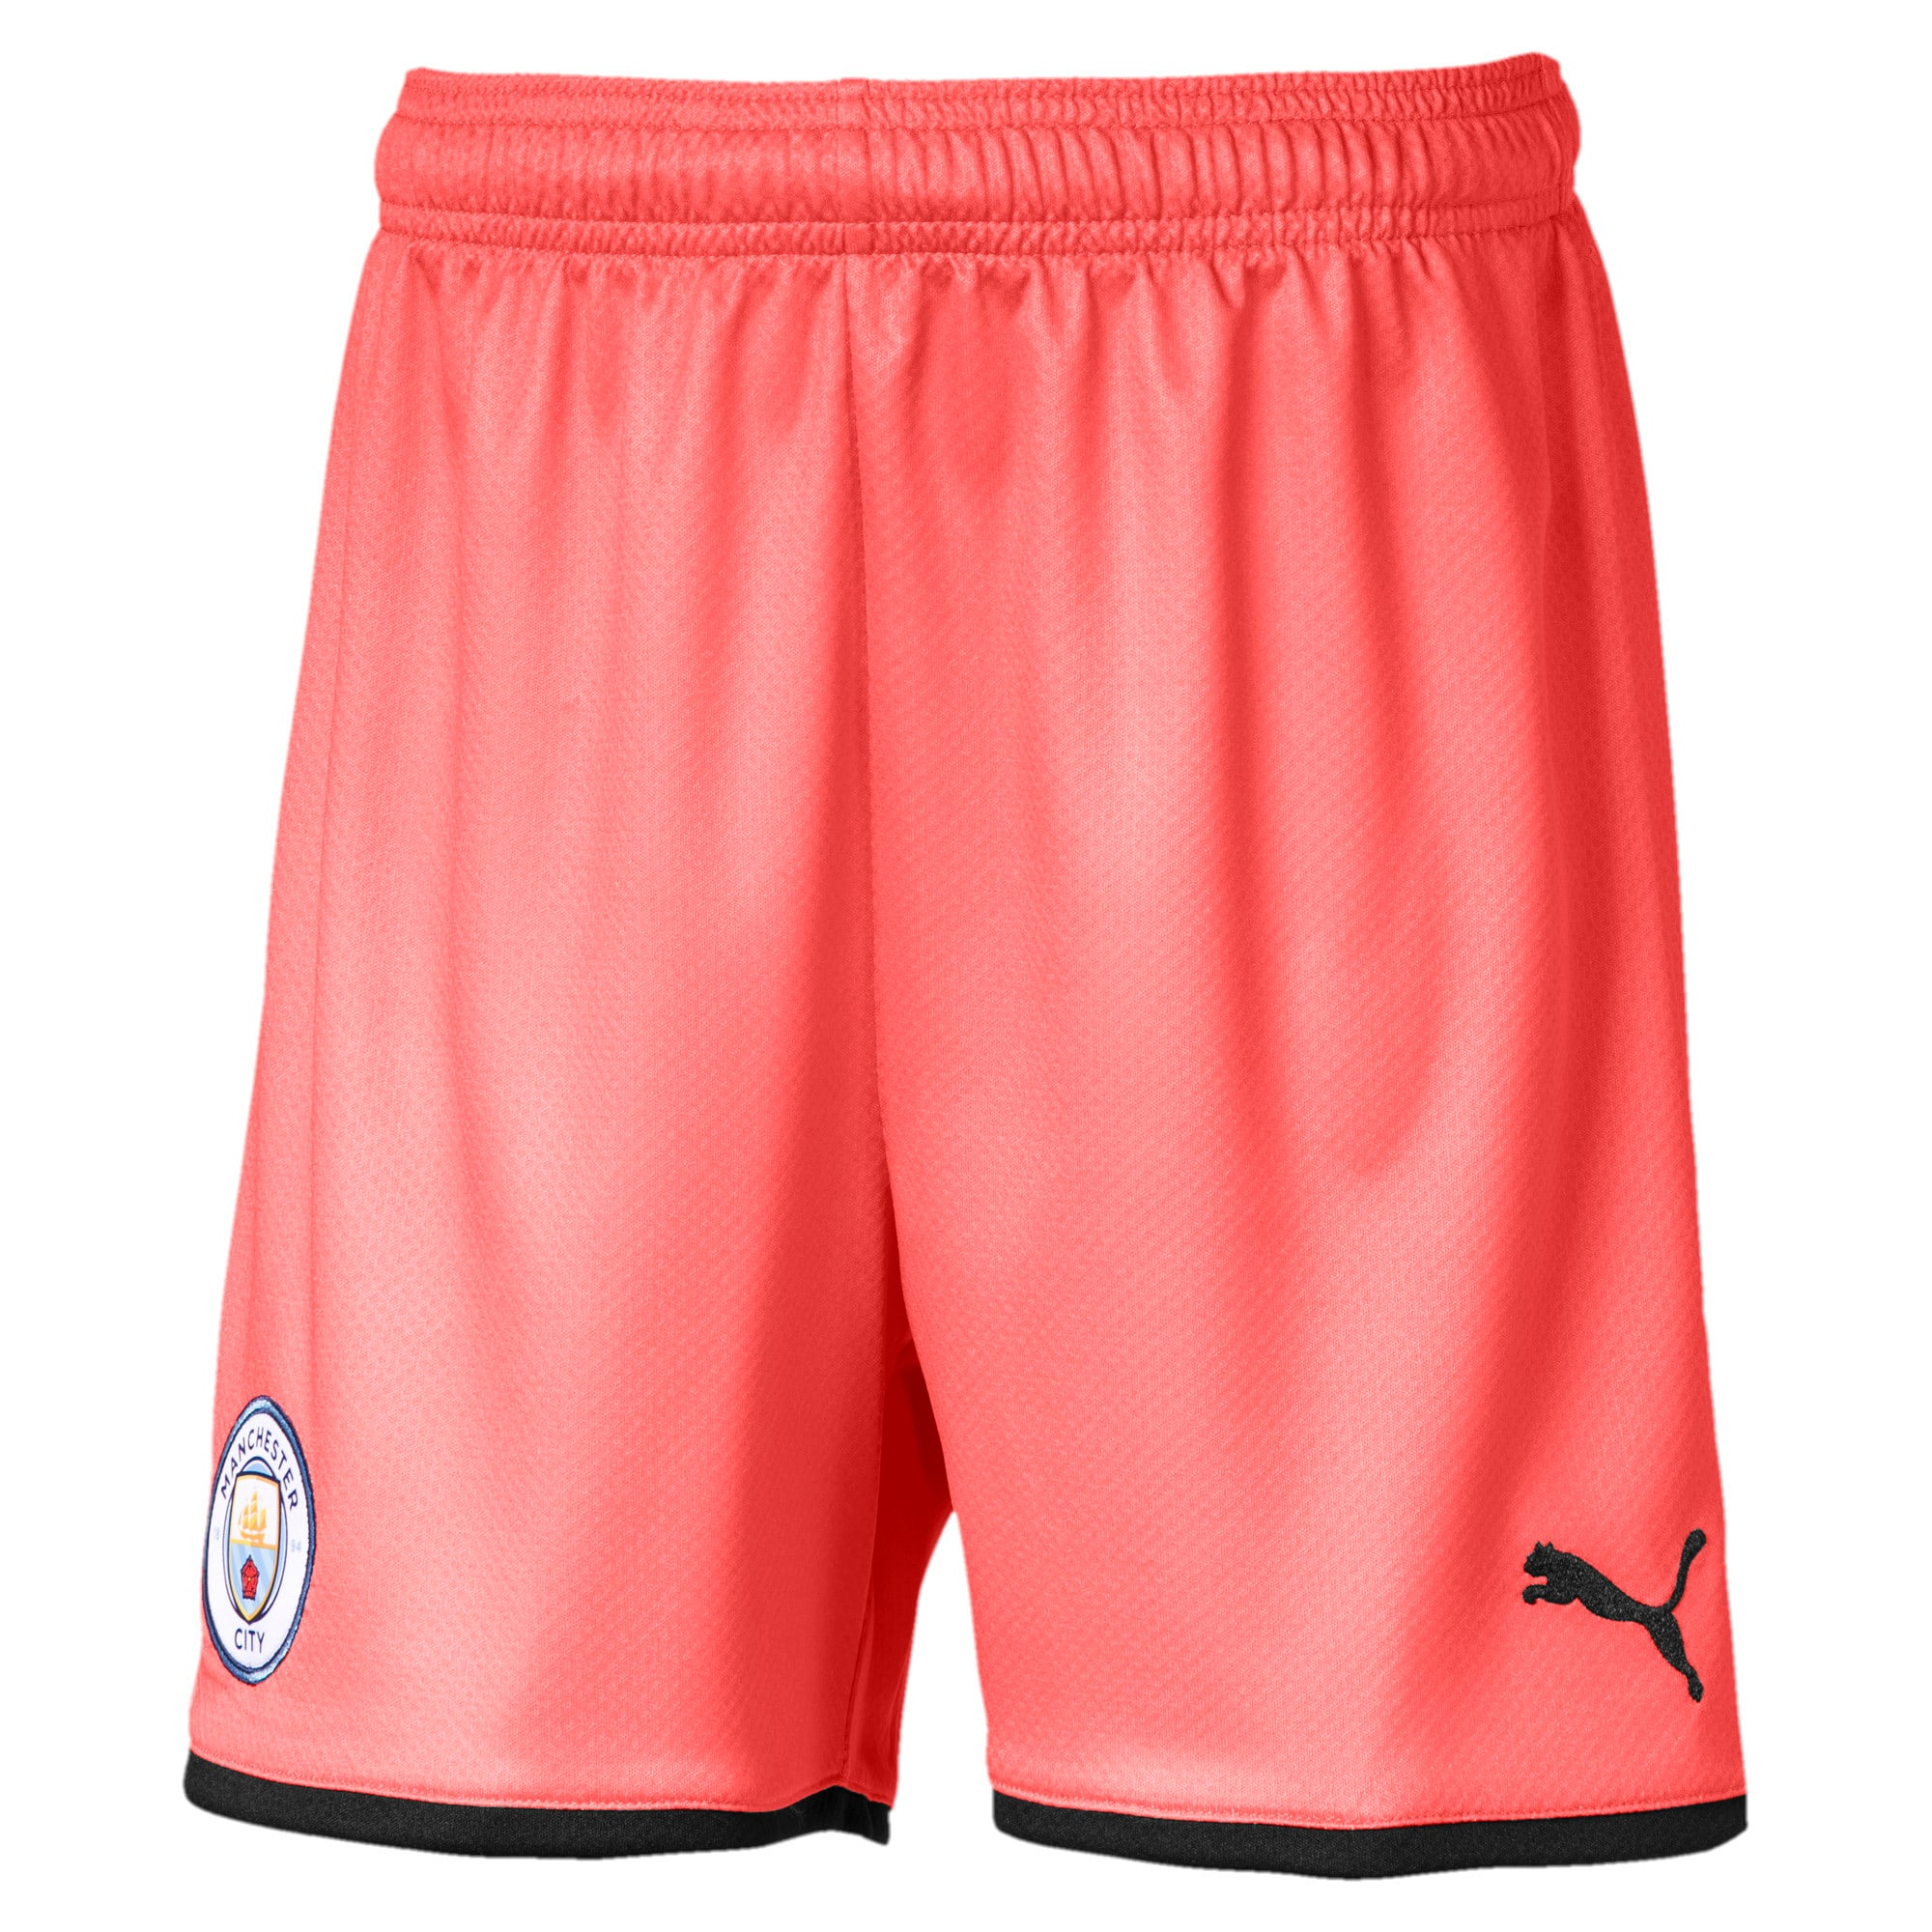 Thumbnail 1 of Manchester City FC Kids' Third Replica Shorts, Georgia Peach-Puma Black, medium